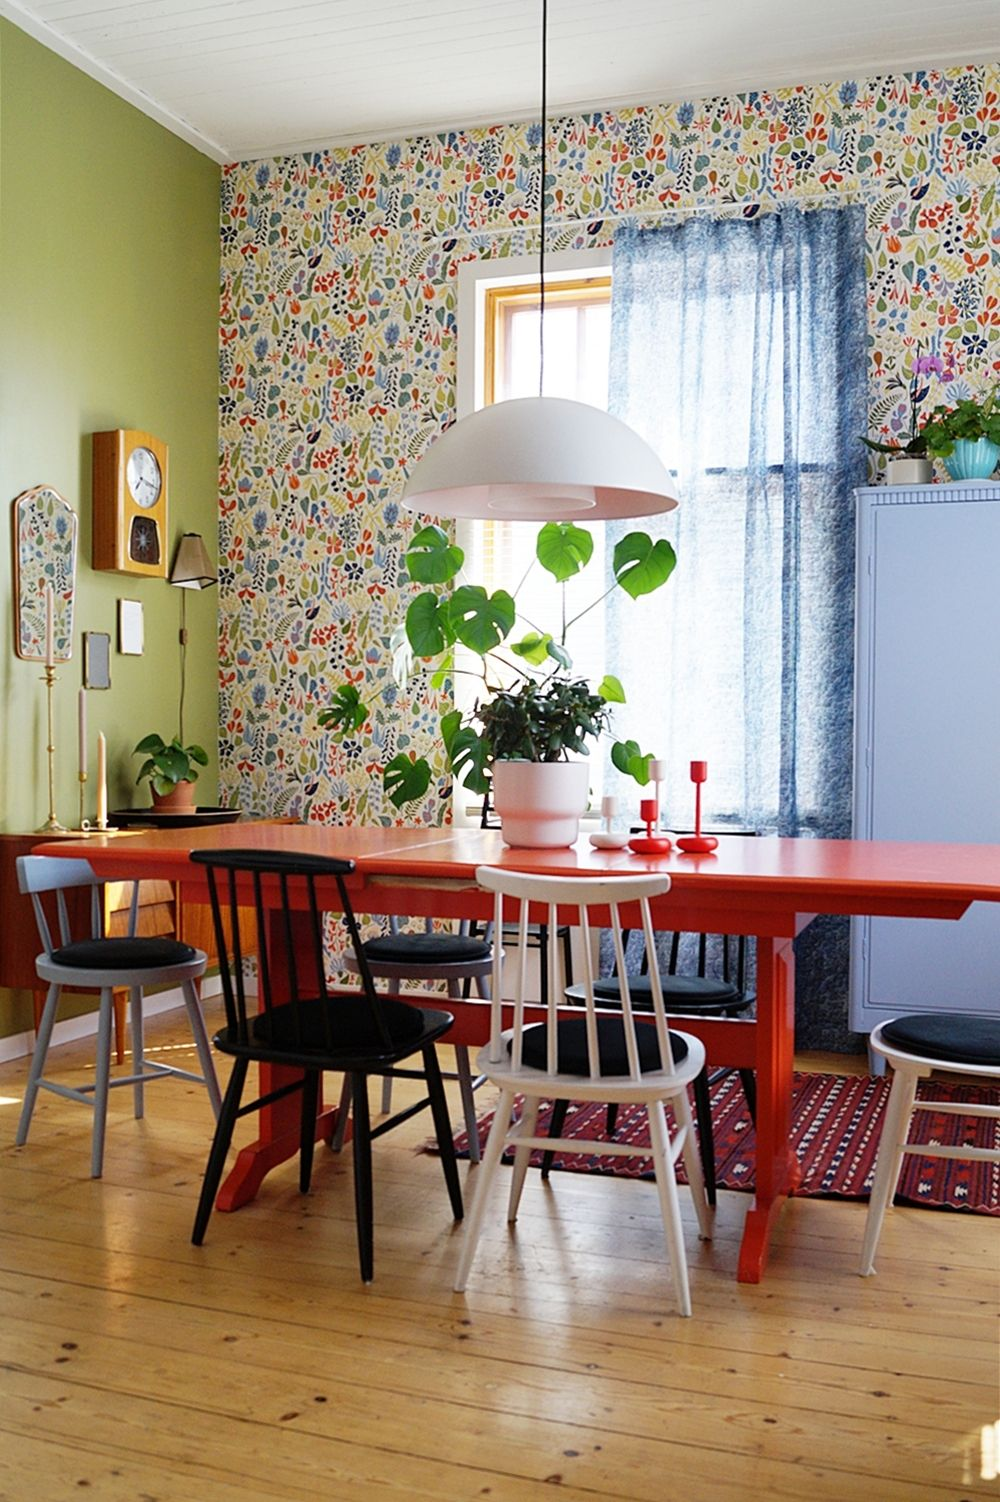 renovating old furniture. Dining Room, Renovation, Green Wall, Old Furnitures, Teak Sideboard, House Renovating Furniture